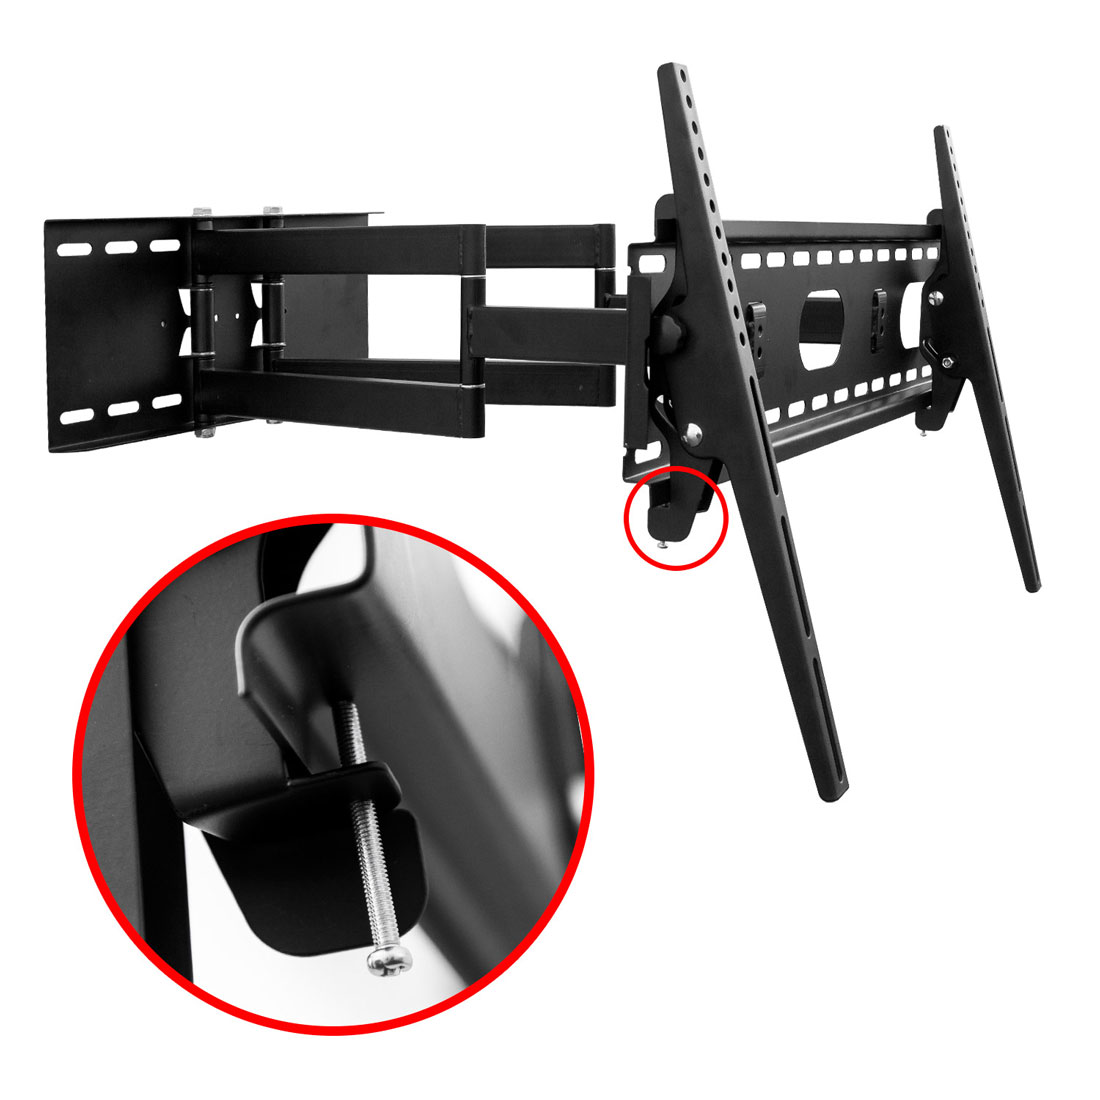 tv wandhalterung doppelarm schwenkbar f r schwere tv bis 70 zoll und 70 kg. Black Bedroom Furniture Sets. Home Design Ideas